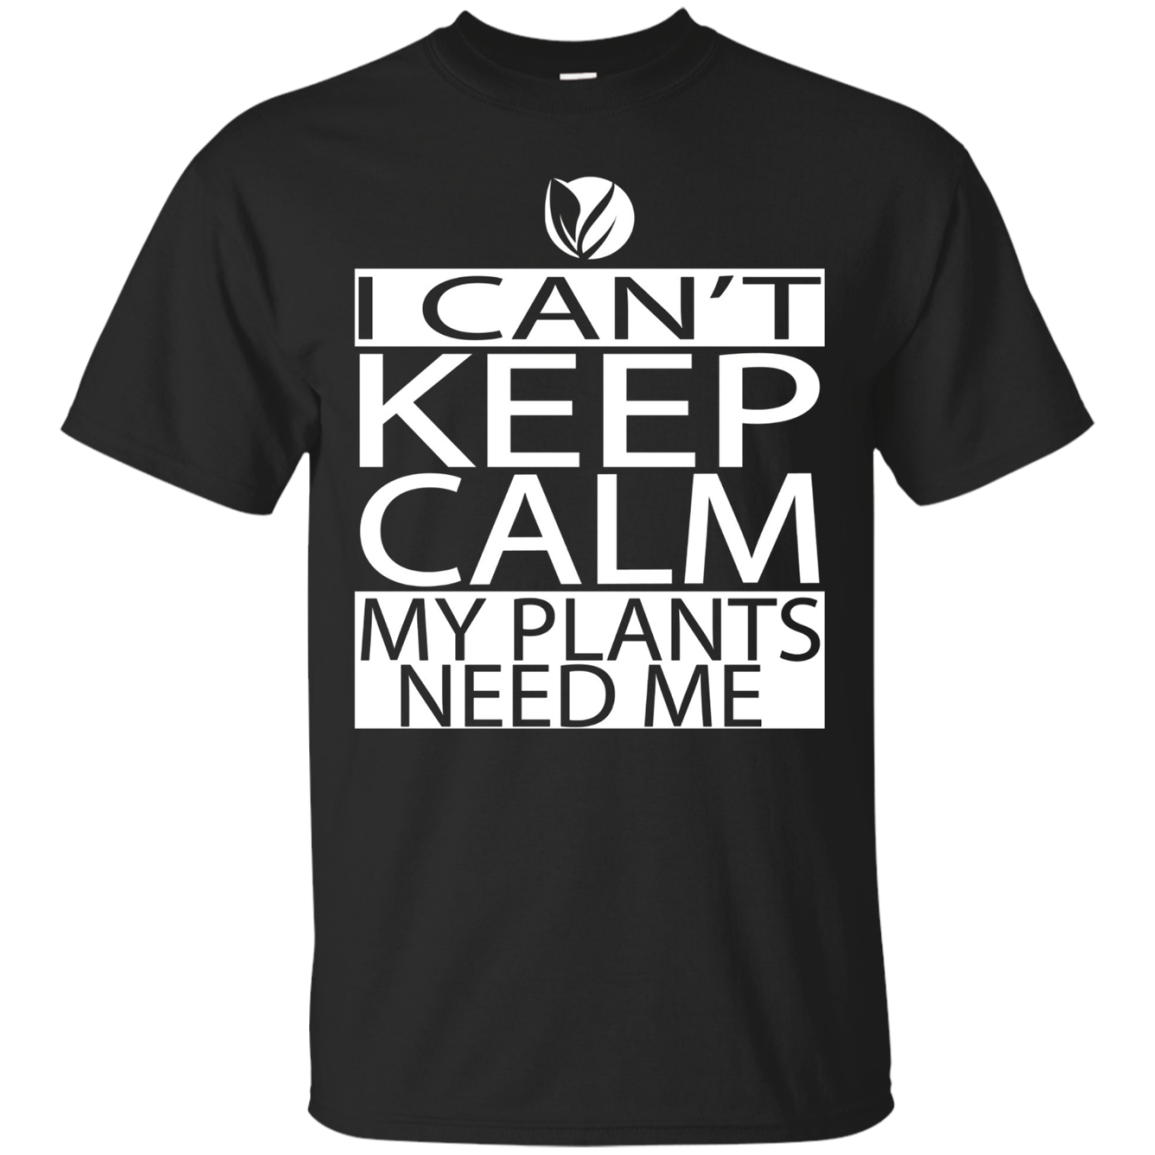 I Can't Keep Calm My Plants Need Me Shirt Funny Gardening